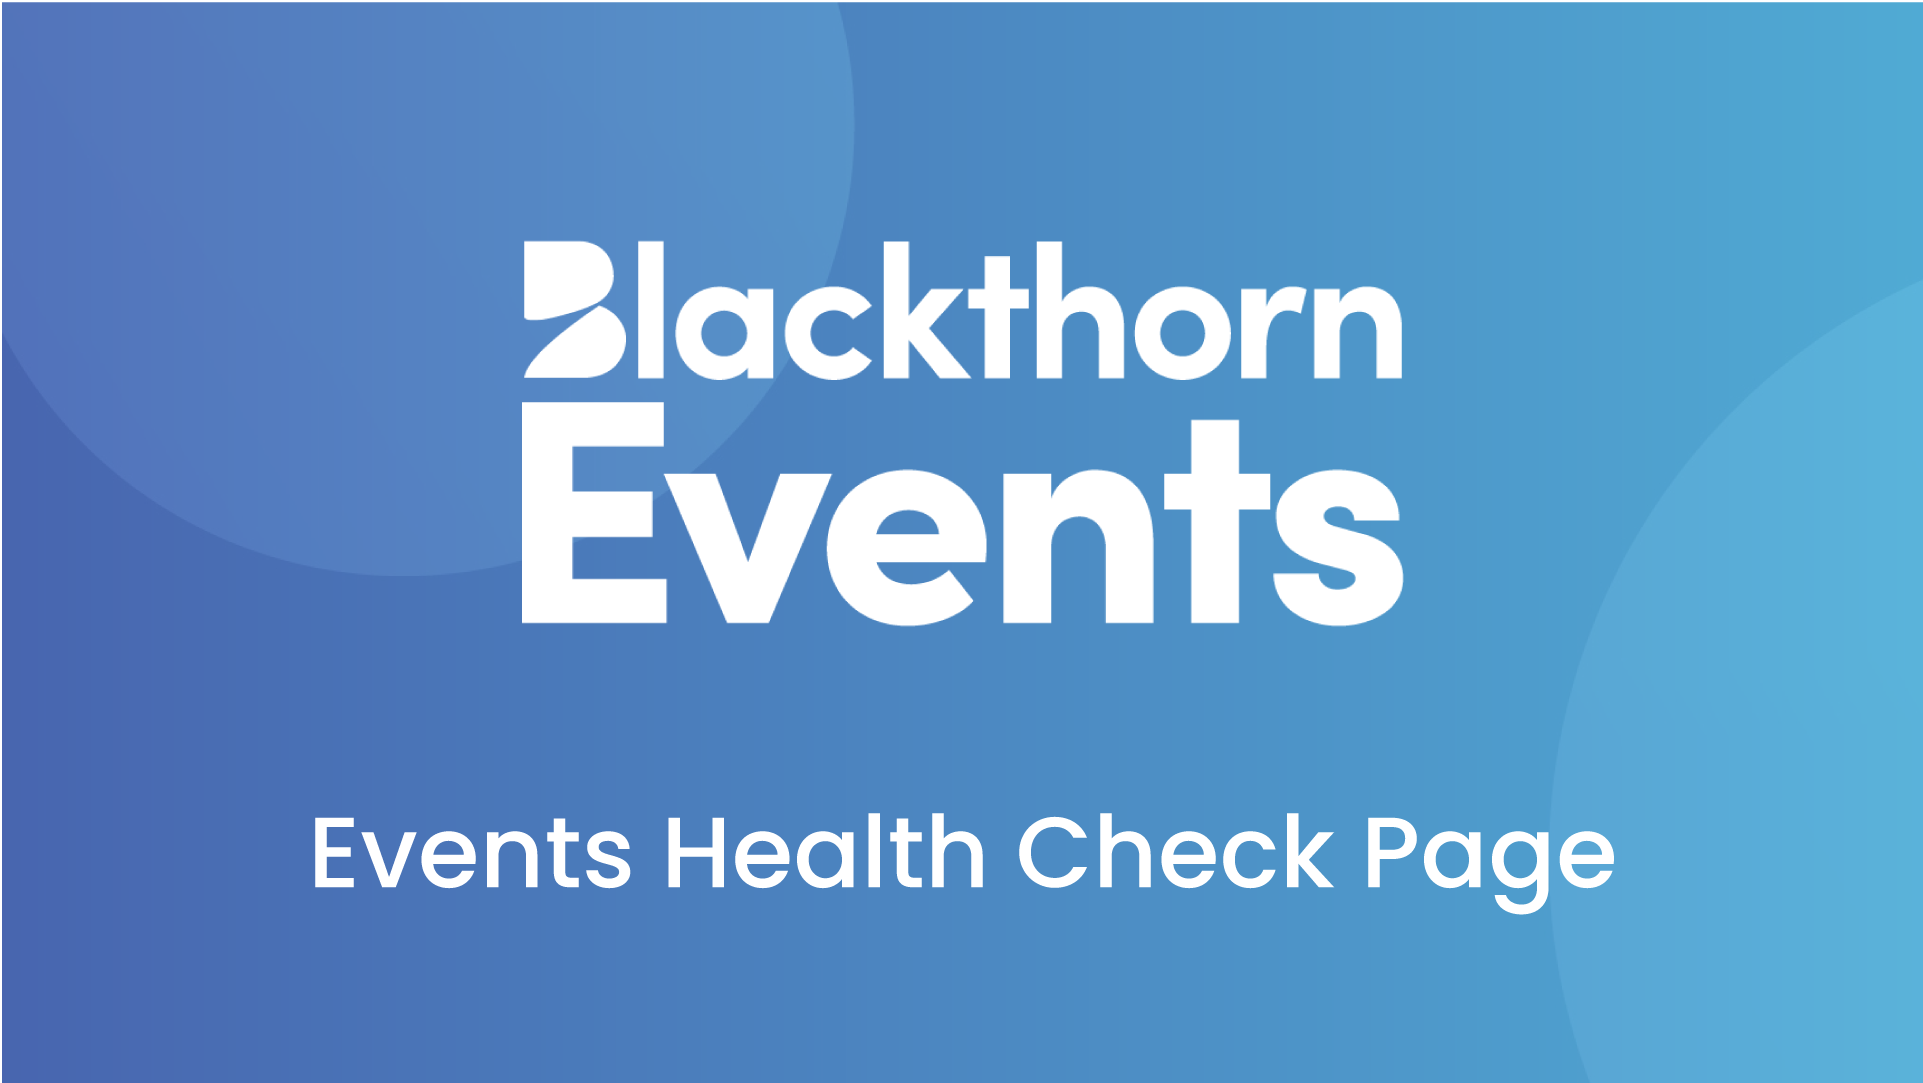 The new Events Health Check page is live!